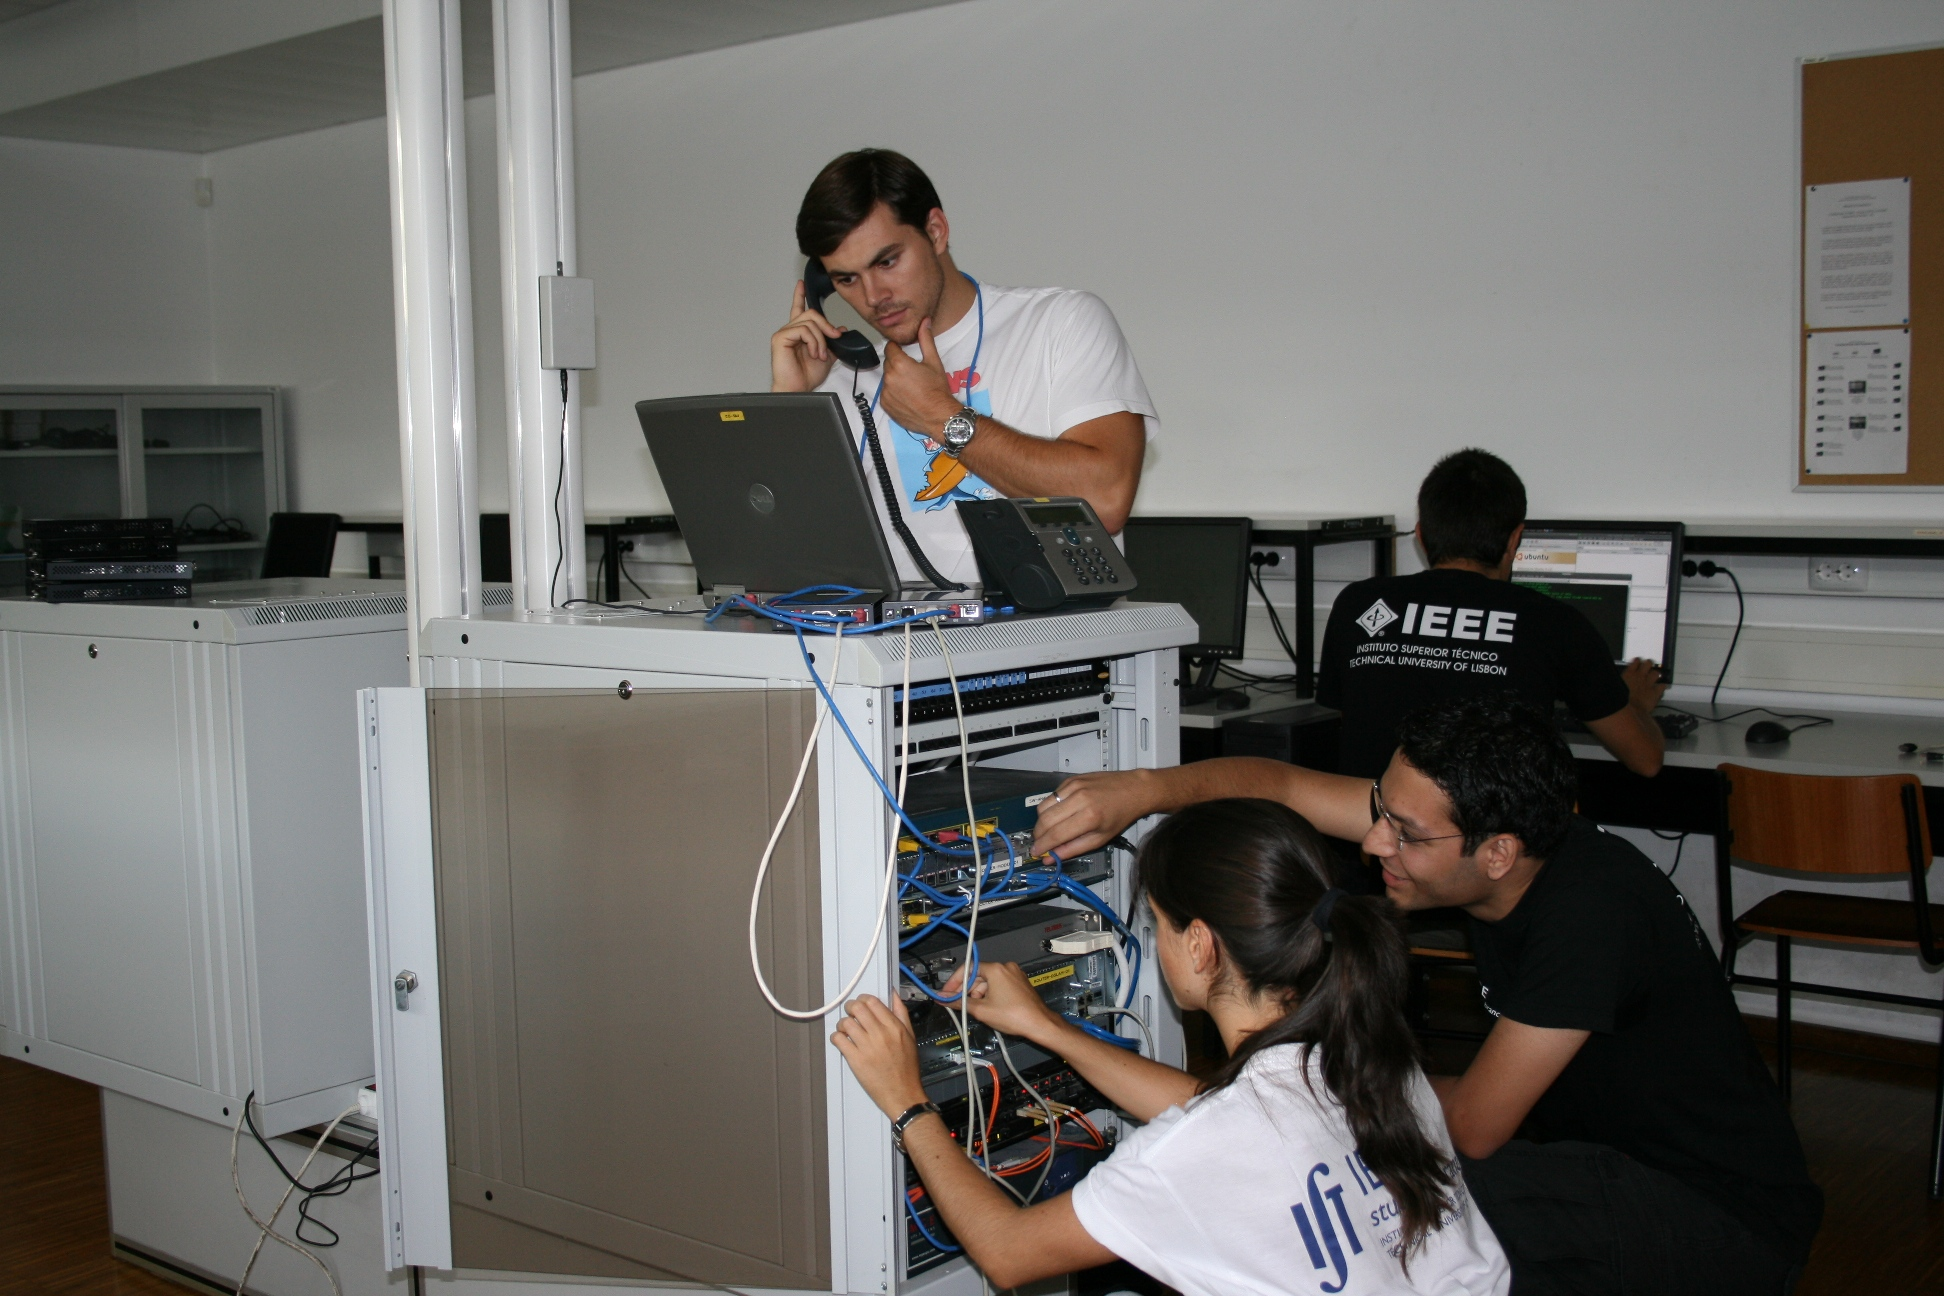 IEEE Day Example Photo